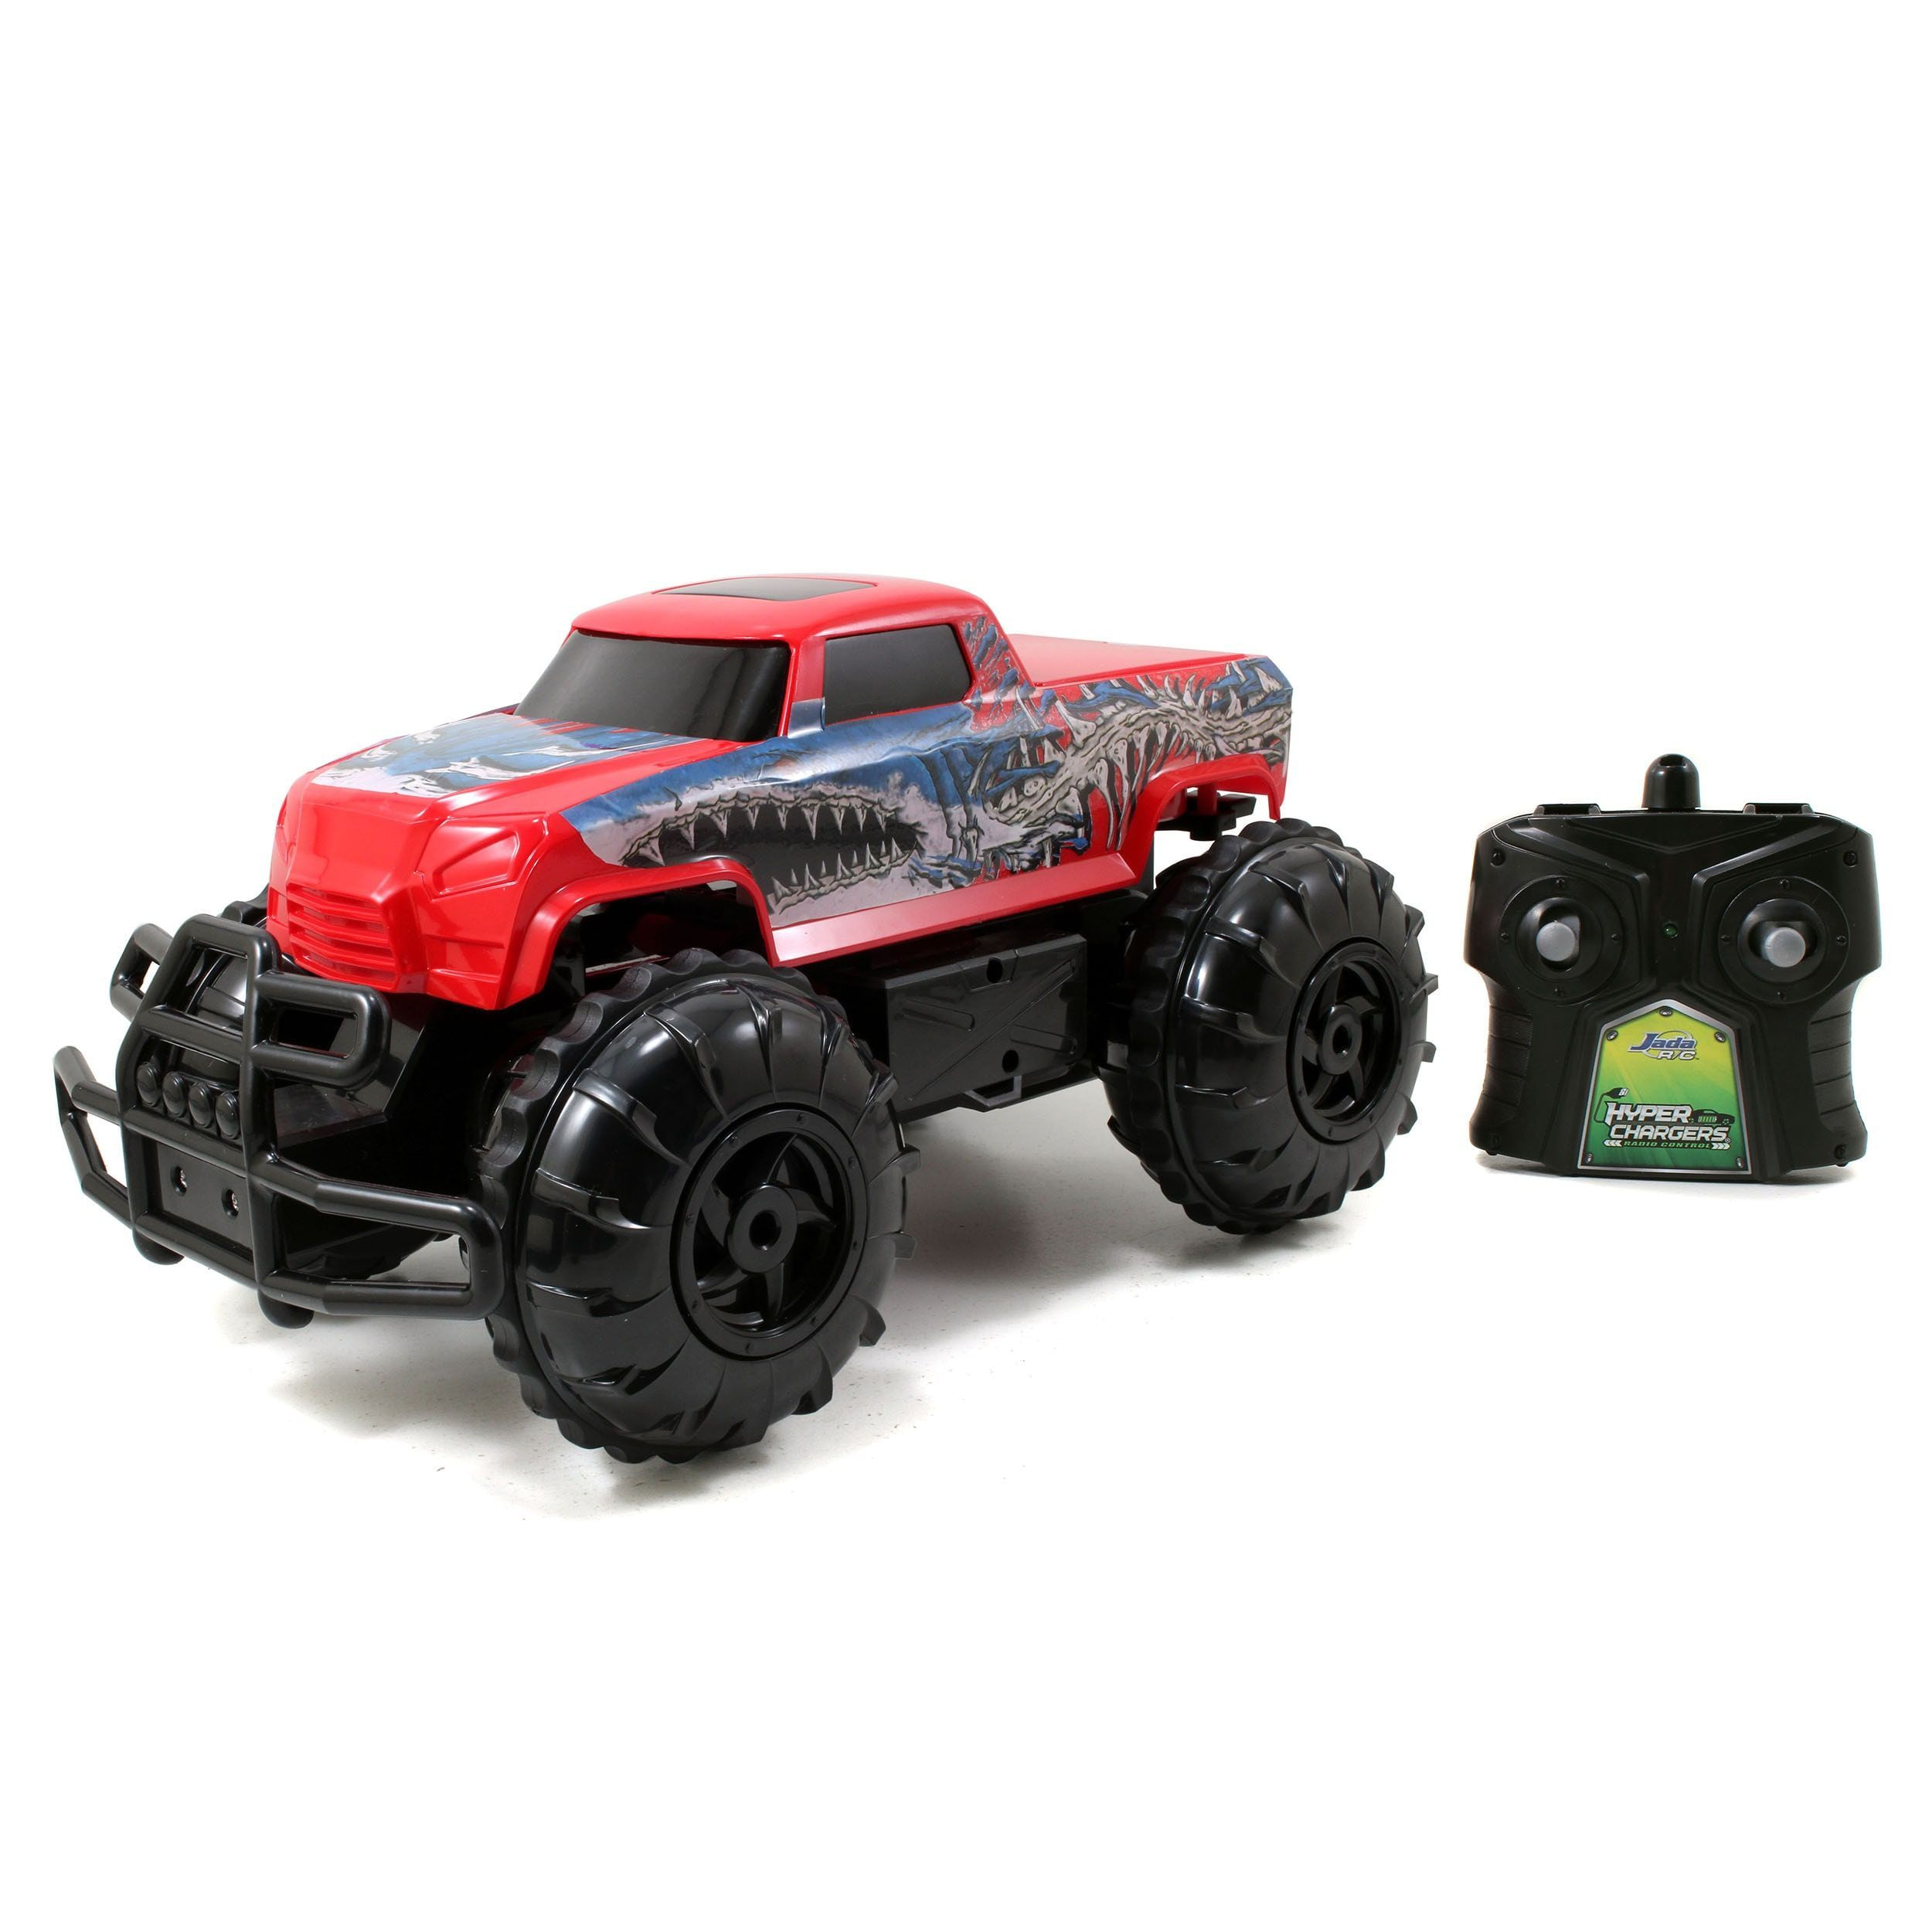 Jada car toys  Jada Toys HyperChargers Red Water and Land by Jada Toys